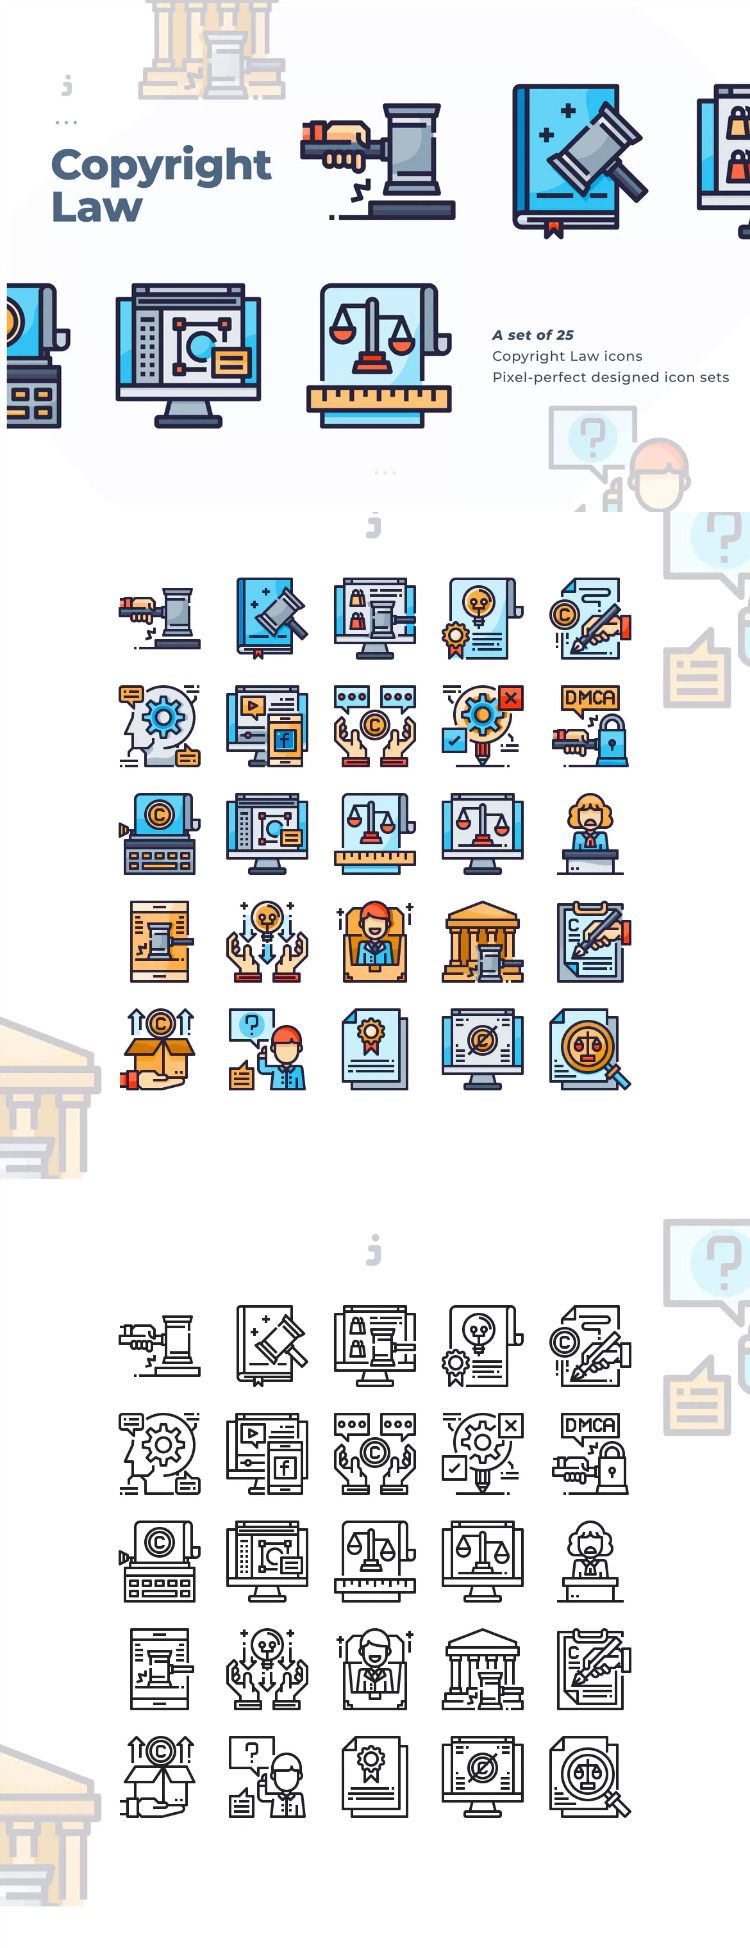 25 Copyright Law icon by Justicon on 로고, 디자인